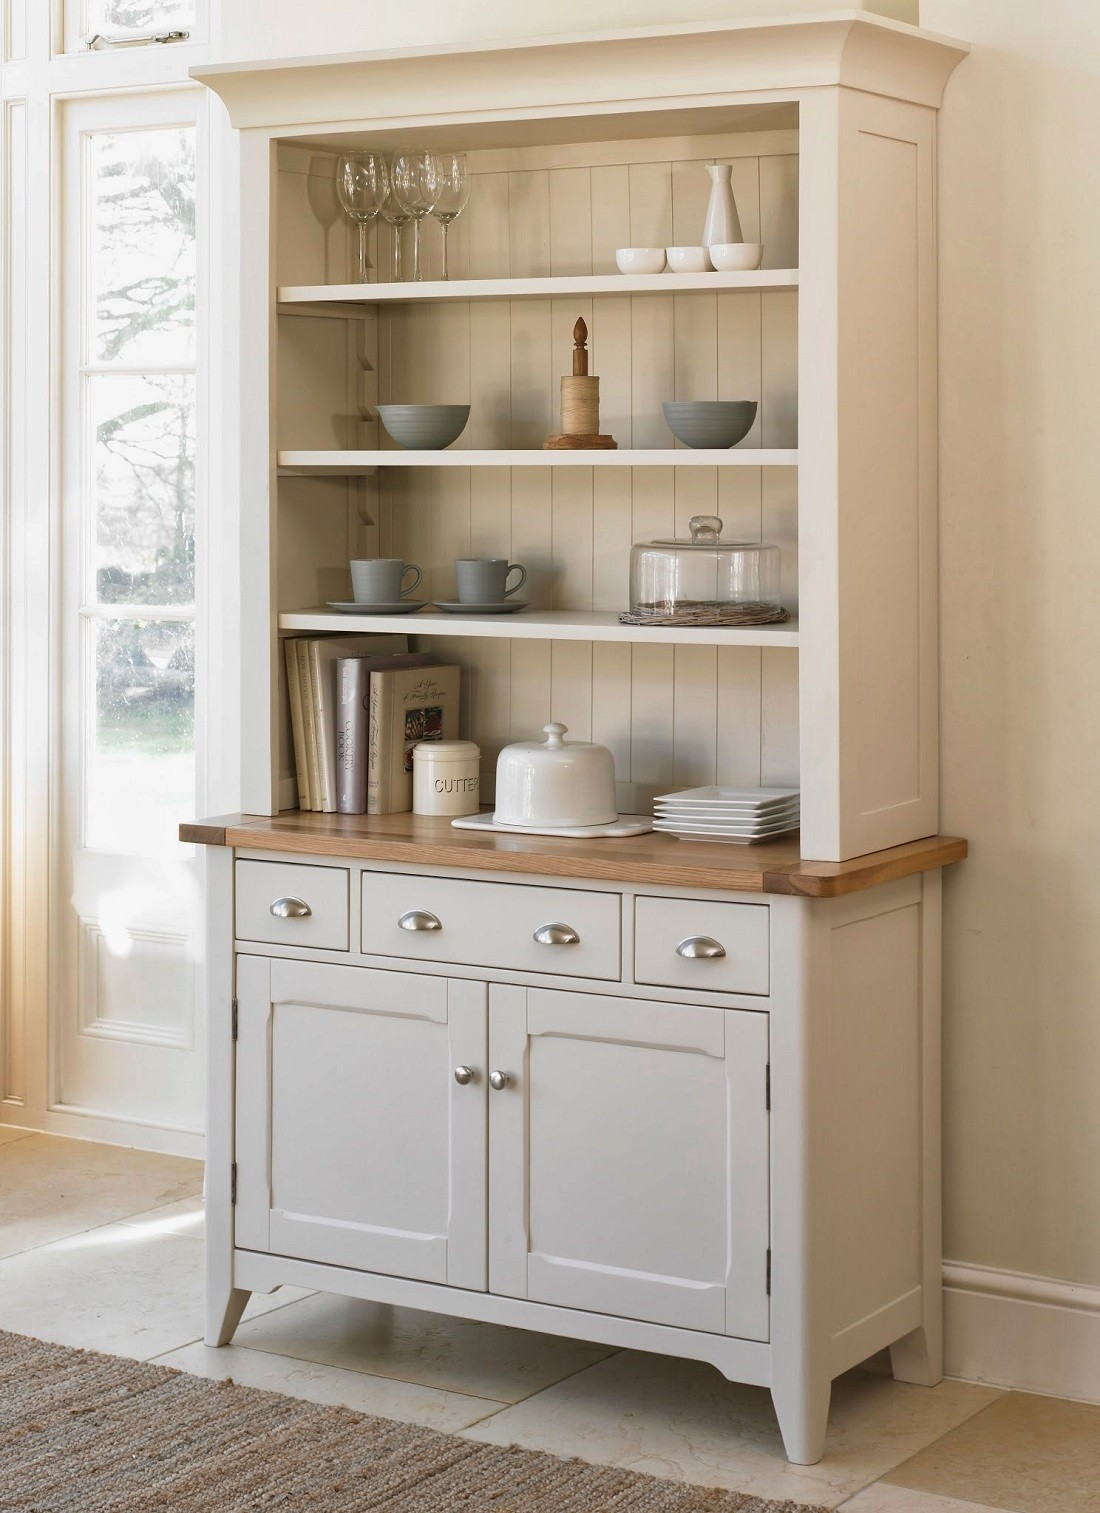 Picture of: Welsh Cupboard Kitchen